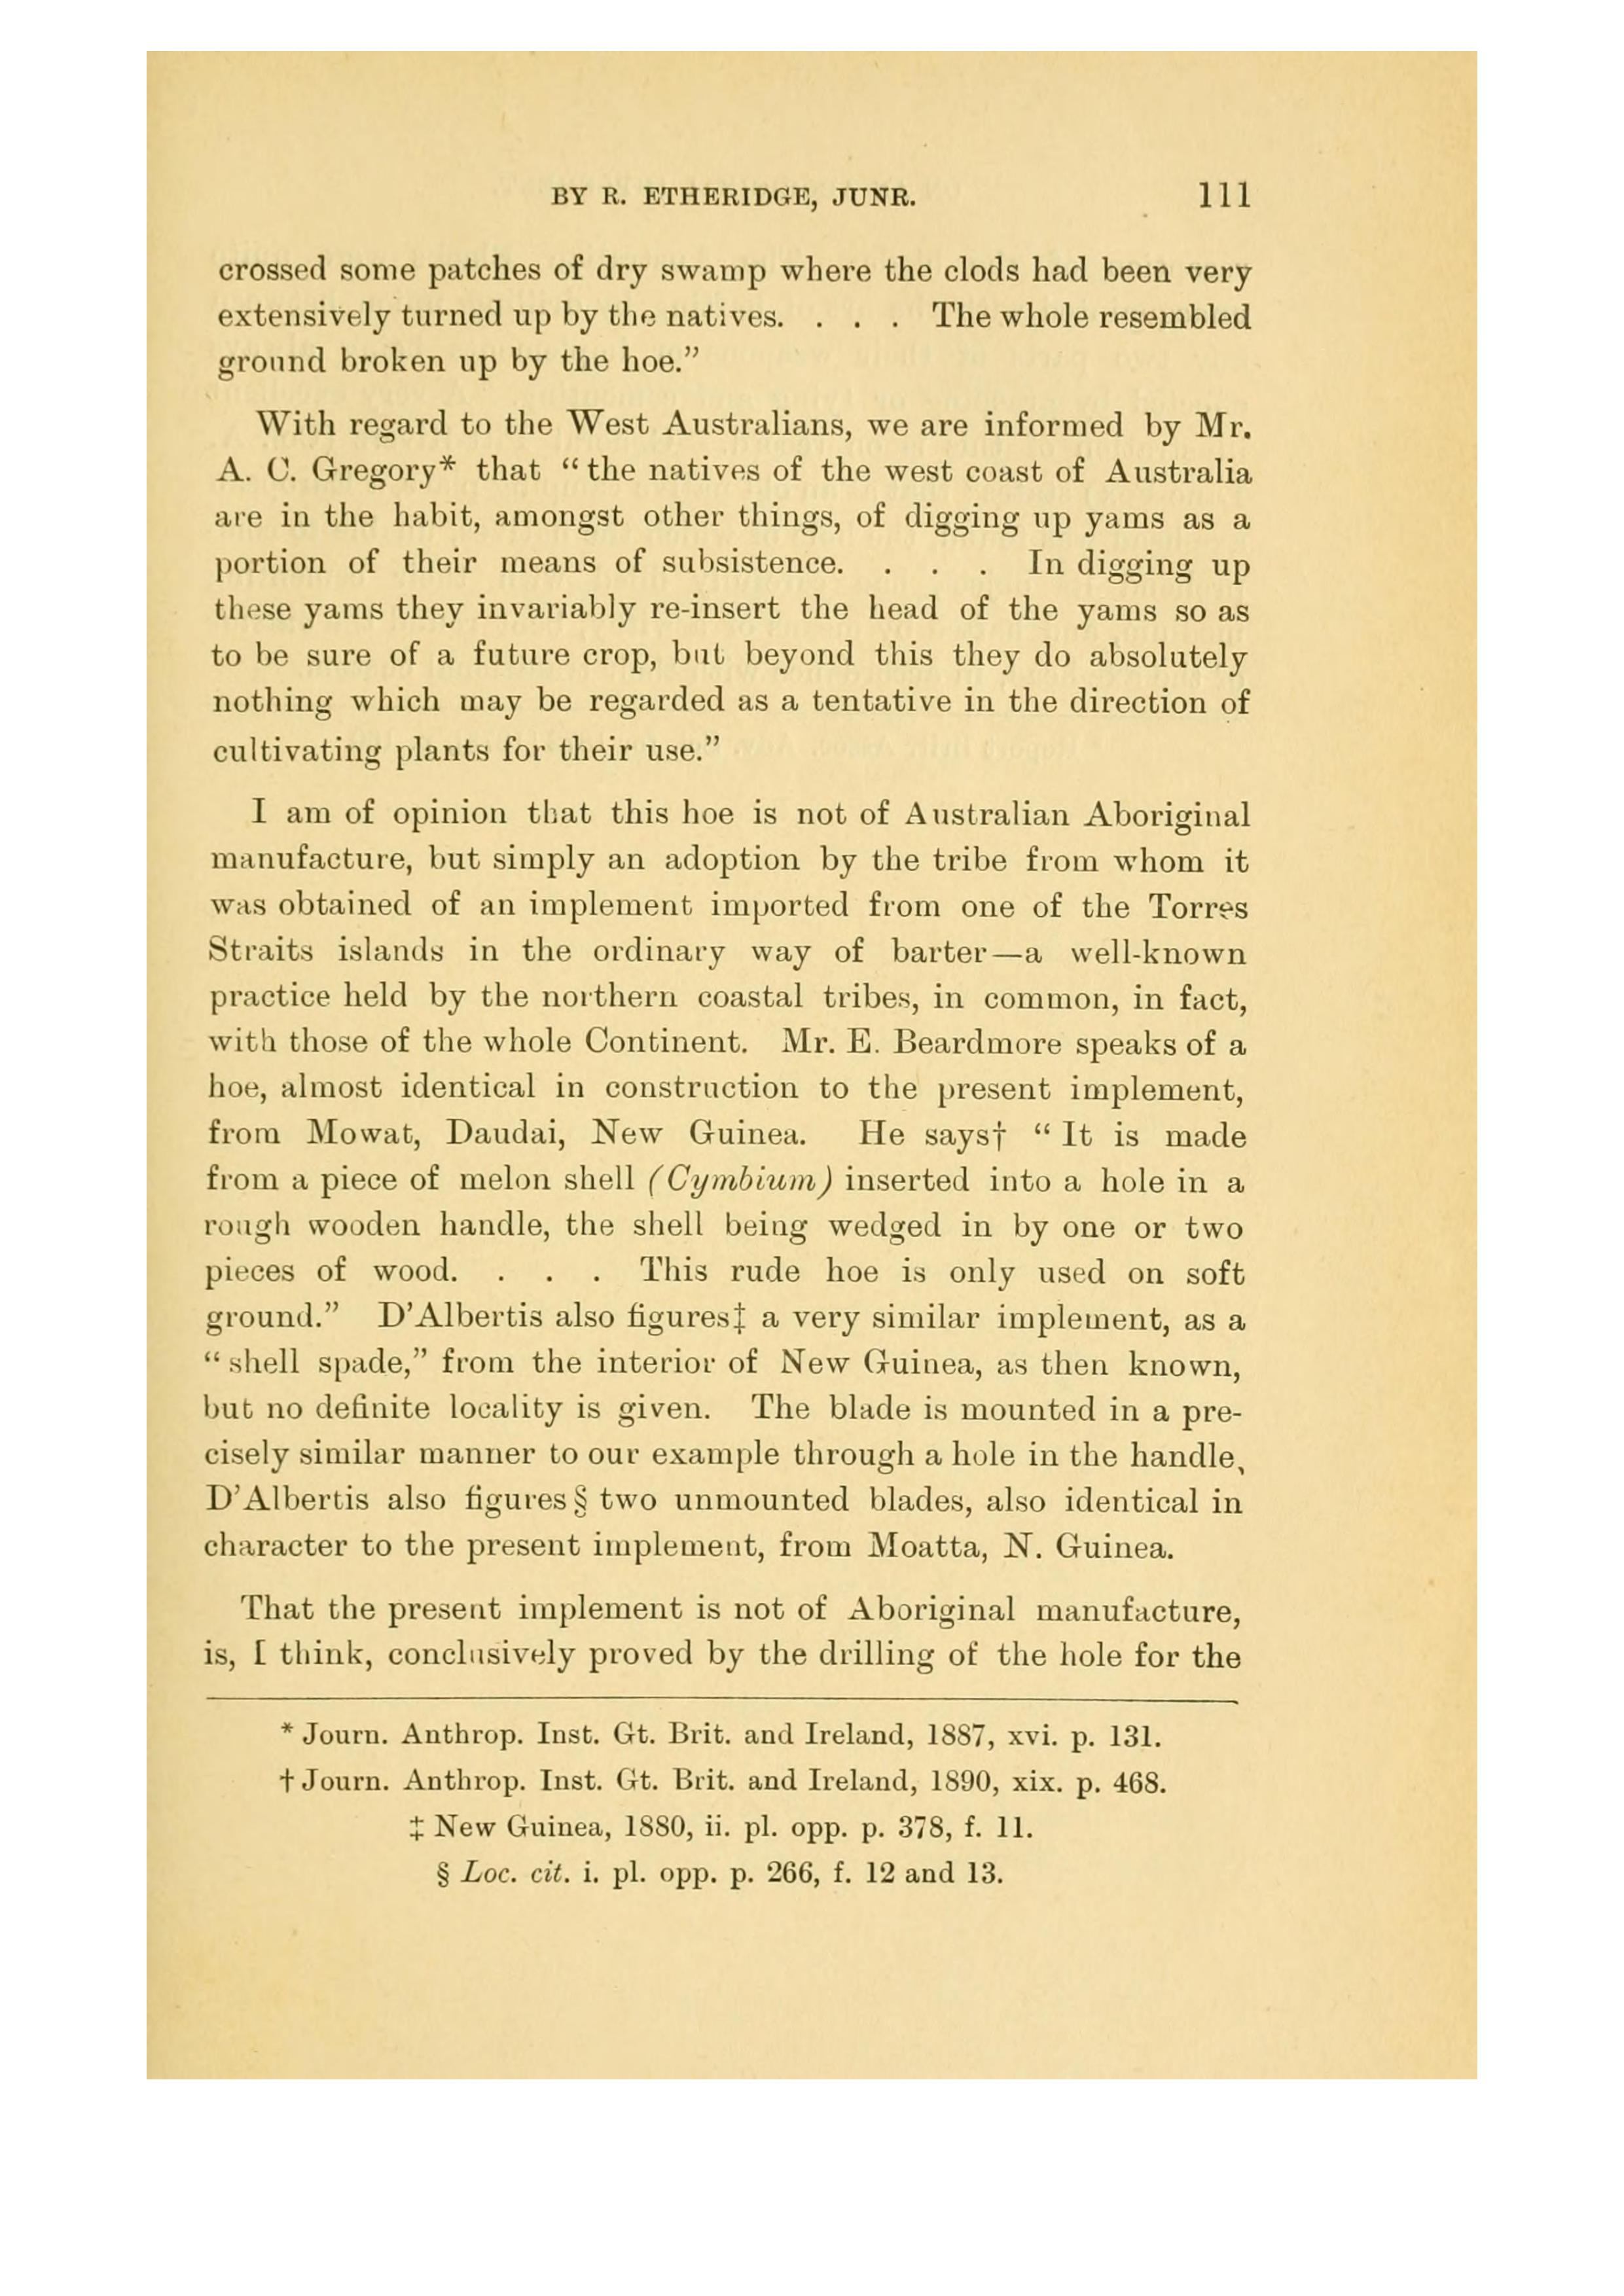 """- Etheridge's 1894 paper misquoting Sir Thomas MitchellEtheridge : """"Sir Thomas Mitchell also, in his account of tropical Australia describes 'ground tilled by the natives.' He states : 'crossed some patches of dry swamp where the clods had been very extensively turned up by the natives…The whole resembled ground broken up by the hoe.""""Mitchell : """"crossed some patches of dry swamp where the clods had been very extensively turned up by the natives…The whole resembled ground broken up by the hoe, the naked surface having been previously so cracked by drought as to render this upturning possible without a hoe. There might be about two acres in the patch we crossed, and we perceived at a distance, other portions of the ground in a similar state.Click here for : Mitchell's Journal"""